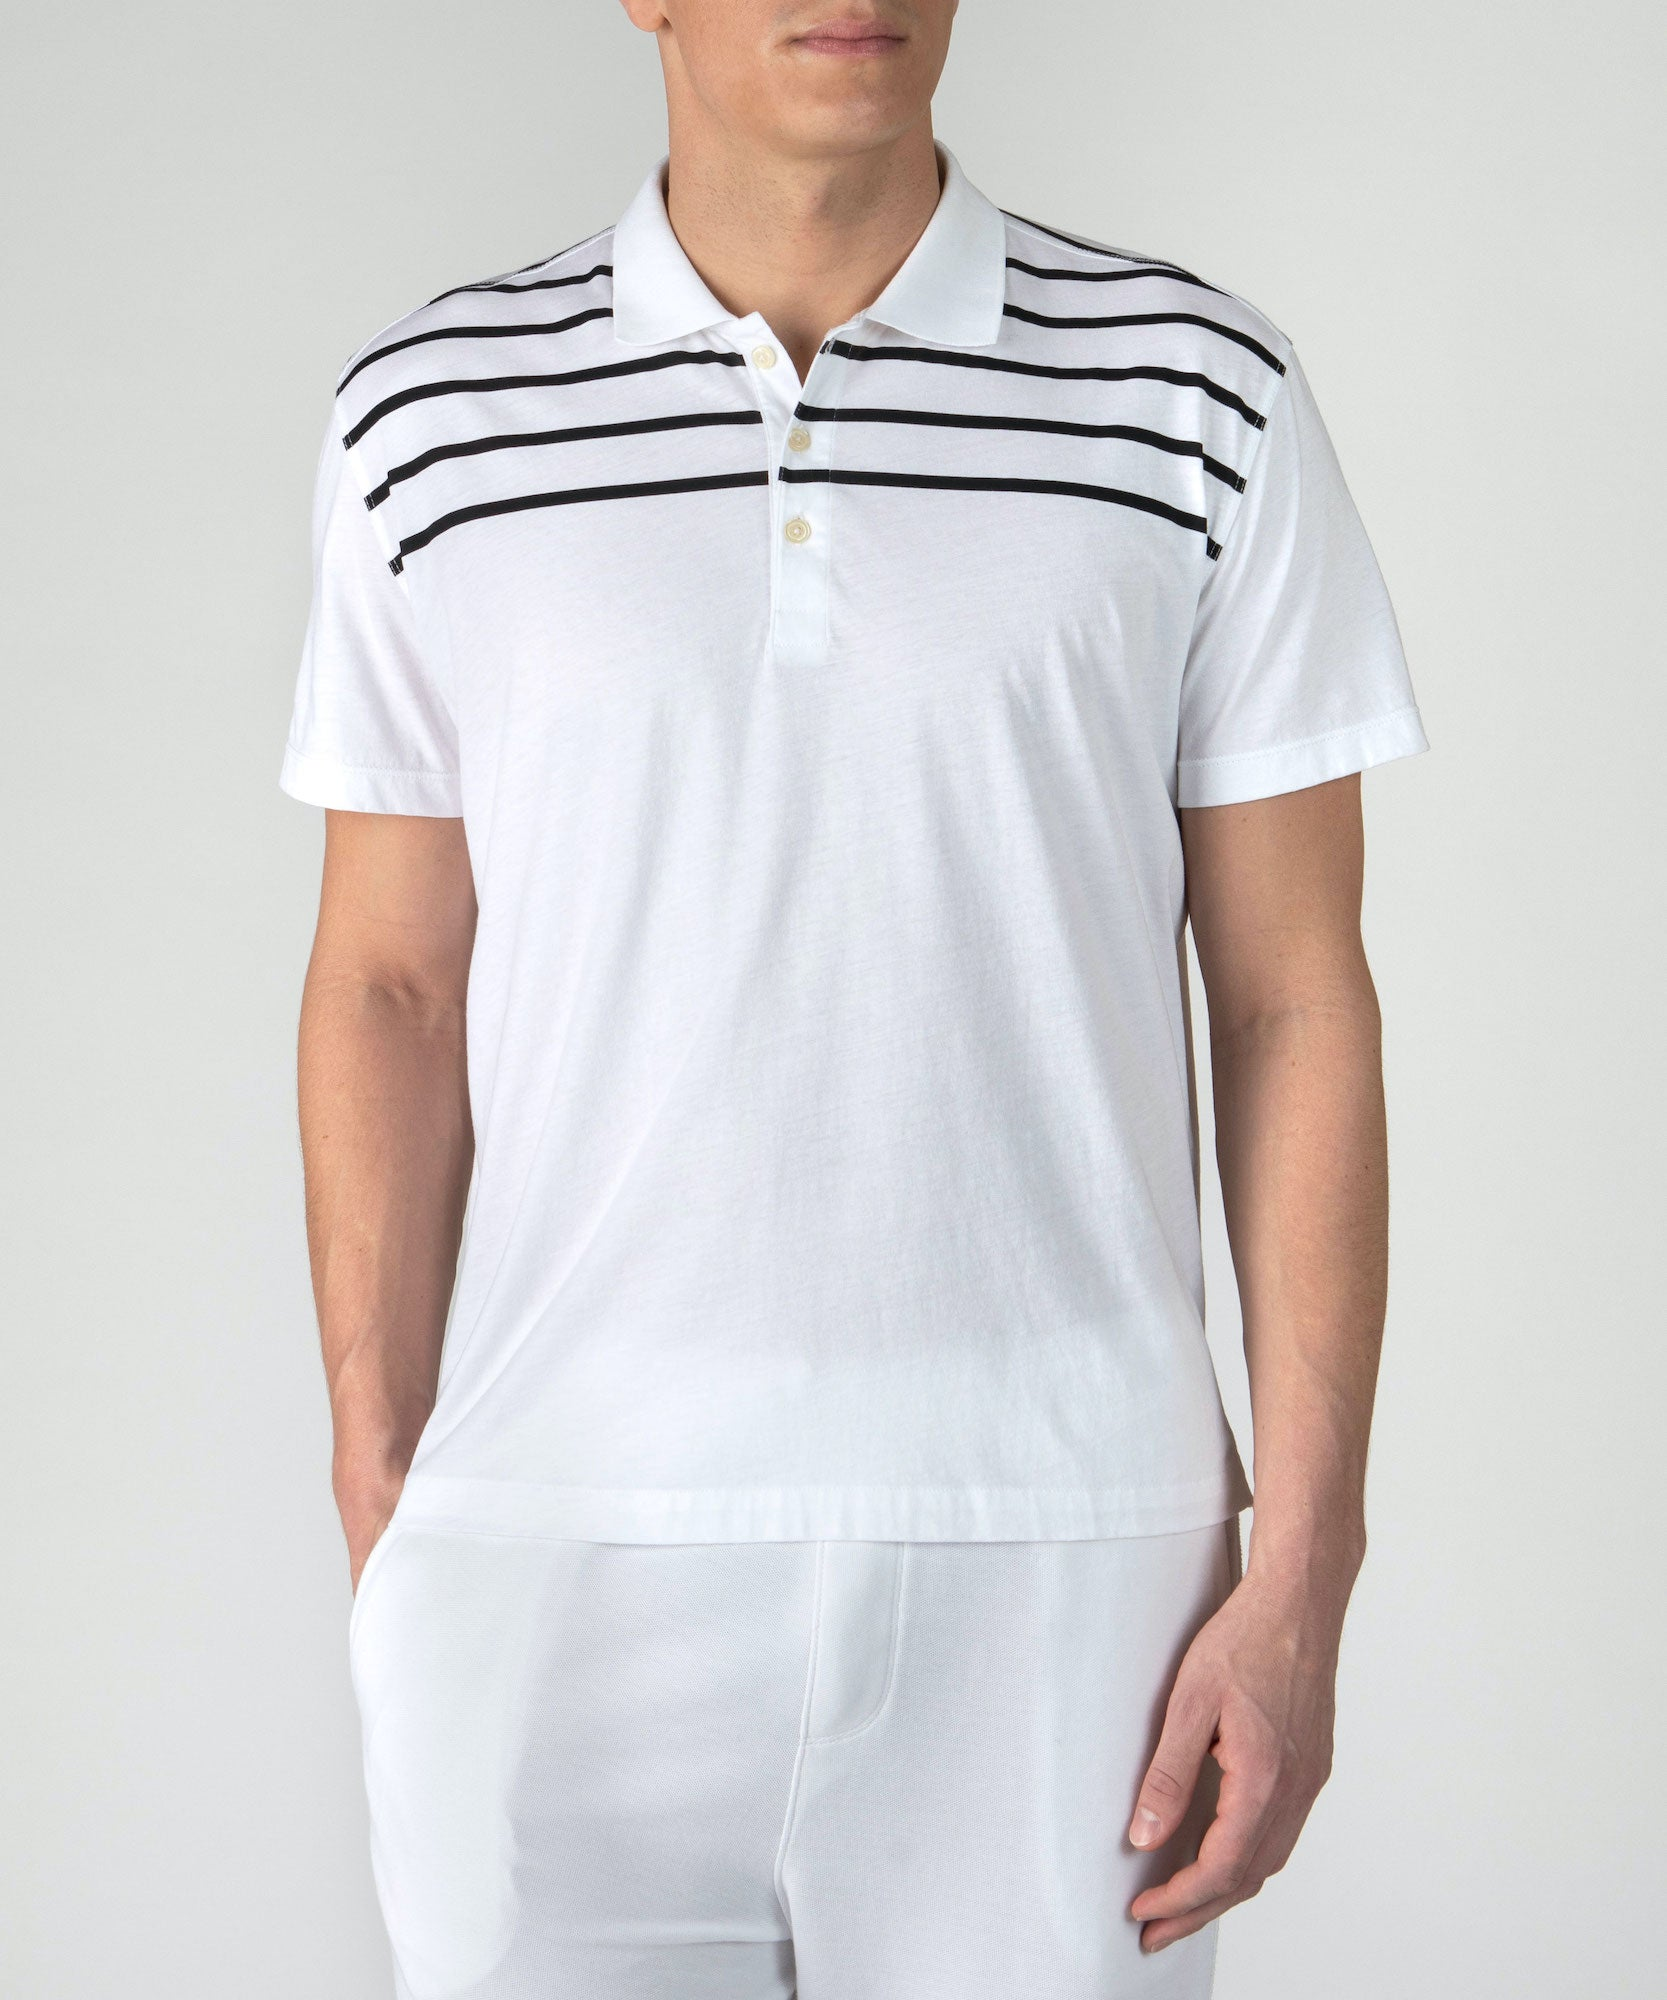 White and Black Striped Jersey Short Sleeve Polo - Men's Polo Shirt by ATM Anthony Thomas Melillo